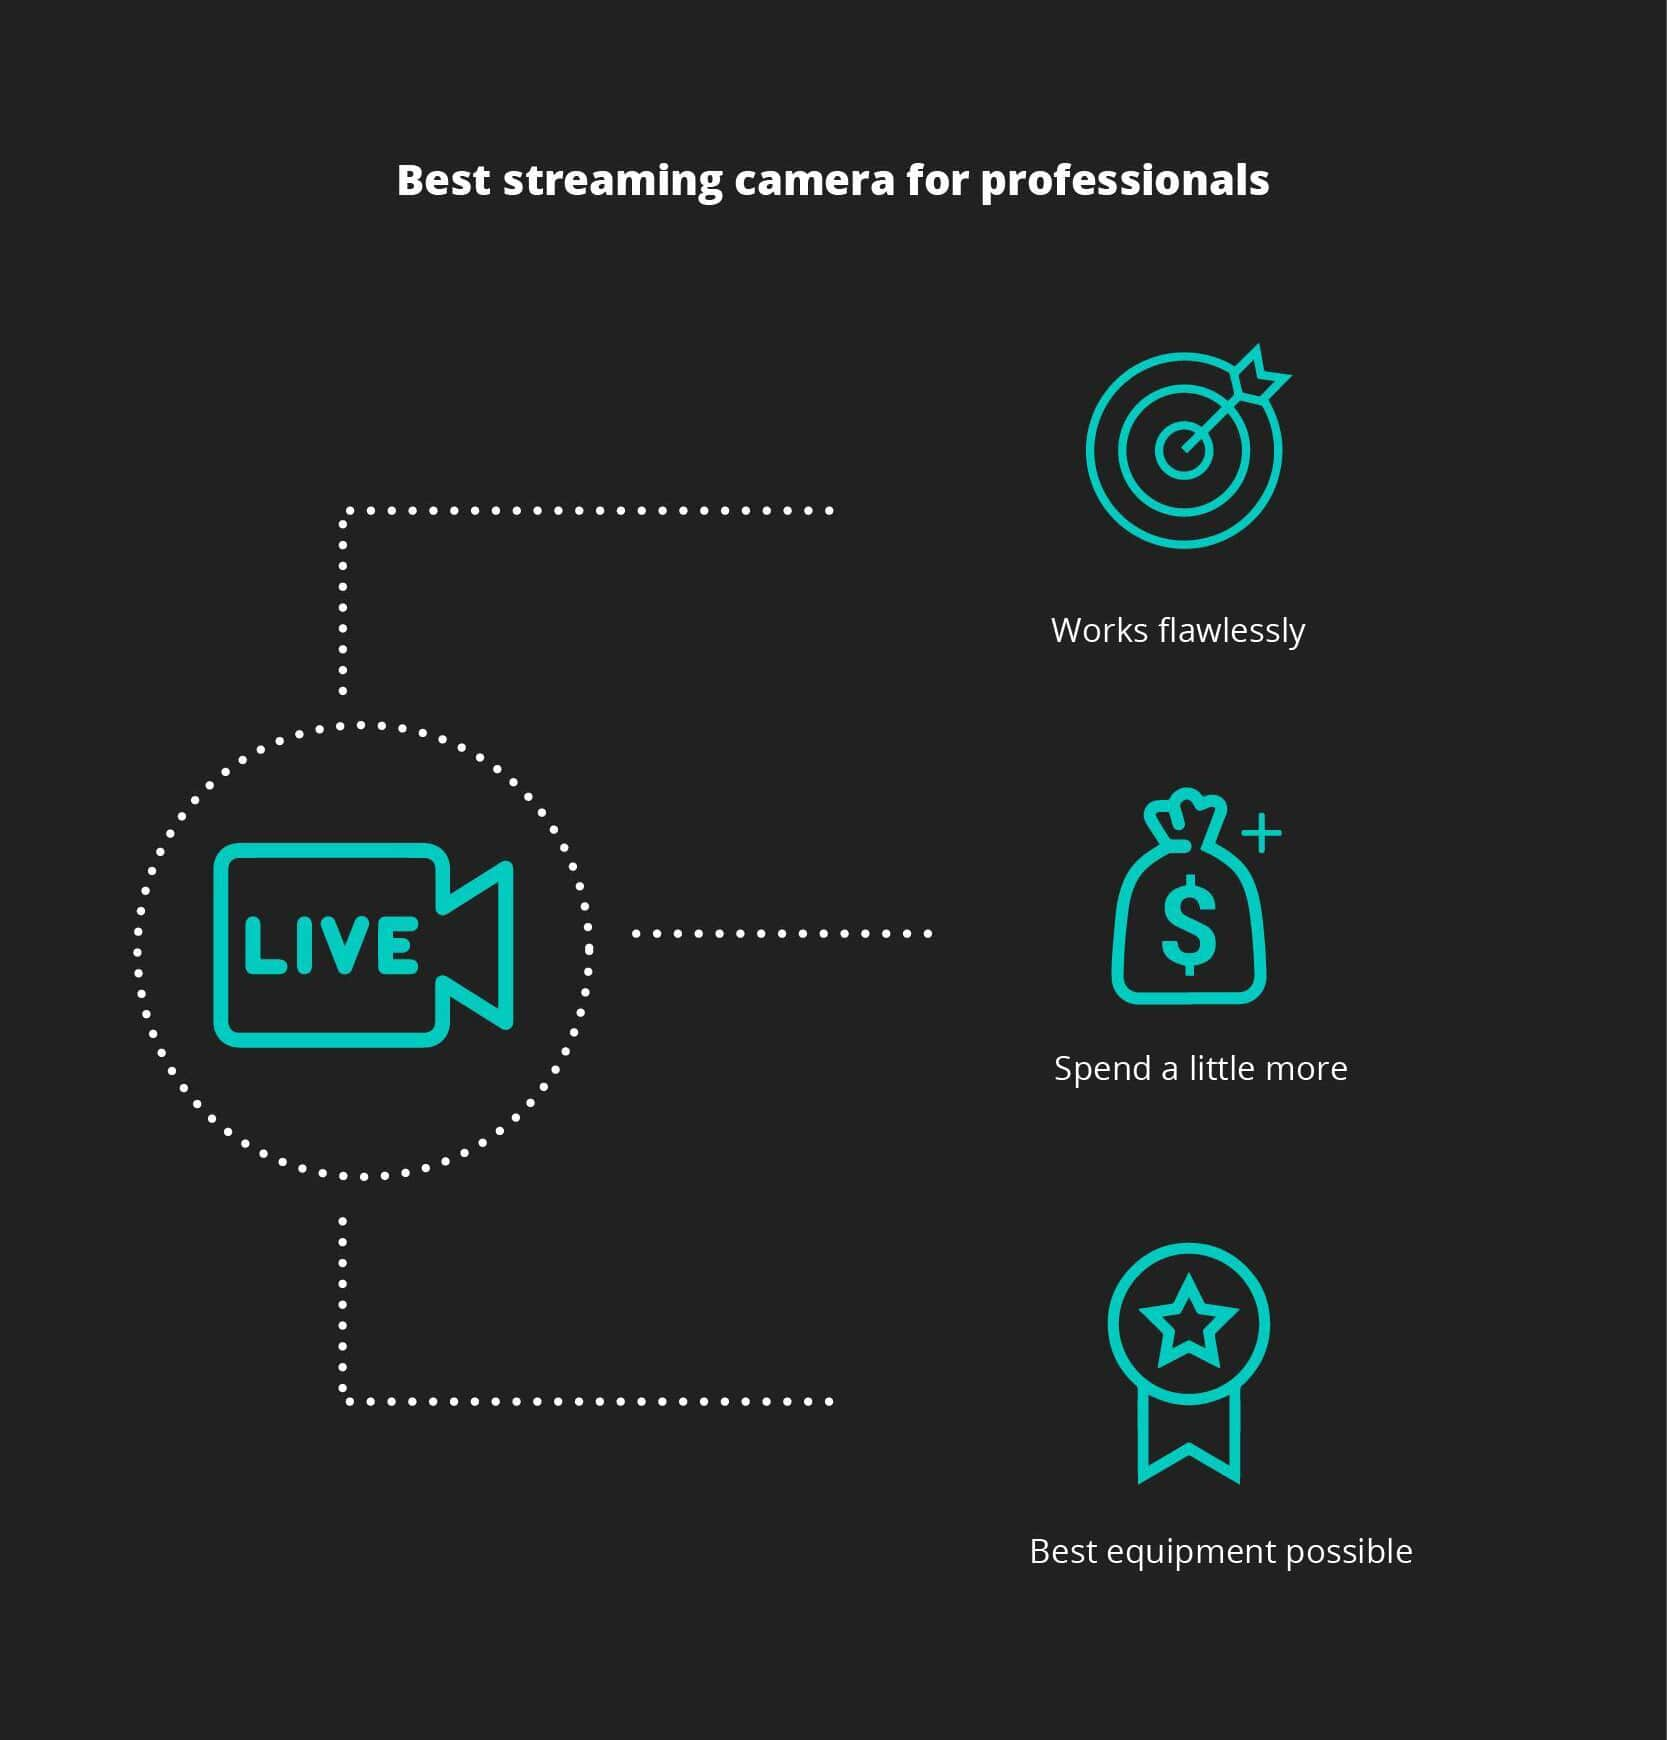 Best streaming camera for professionals